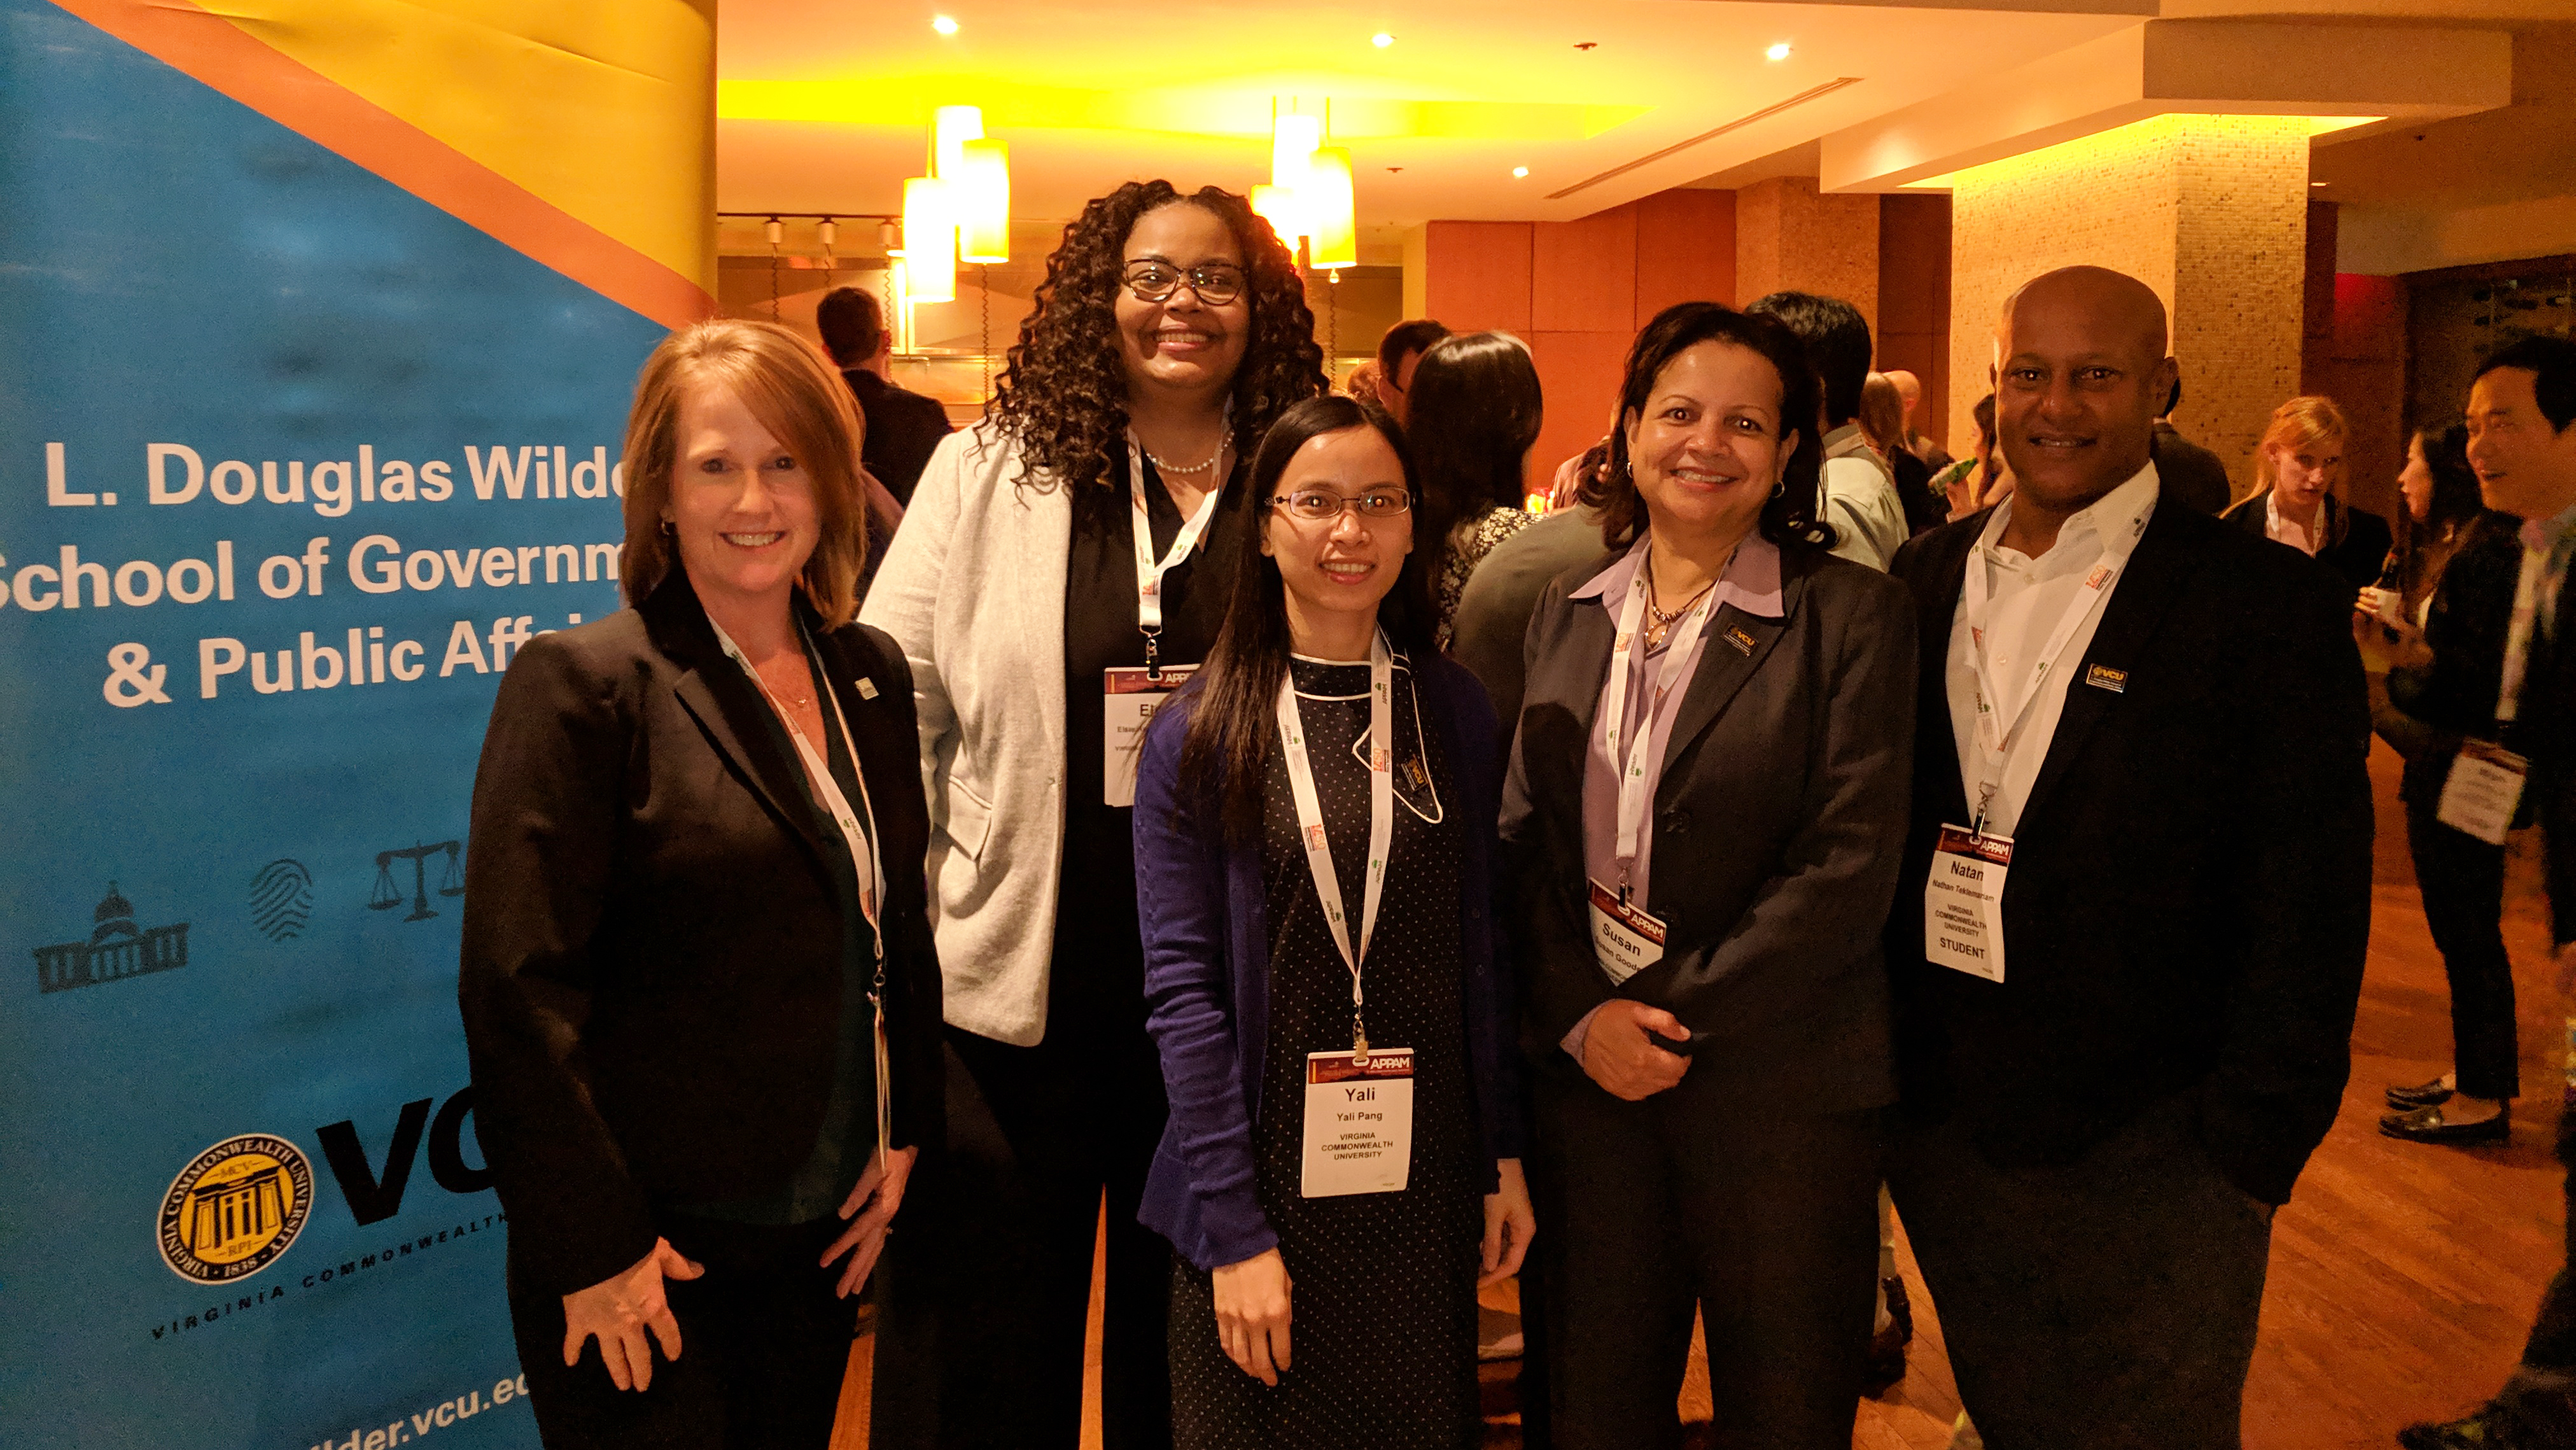 Wilder School delegation members at the APPAM Student Mixer on Nov. 9. From left to right: Jill Gordon, Ph.D., Elsie Harper-Anderson, Ph.D., Yali Pang, Susan Gooden, Ph.D., and Nathan Teklemariam.